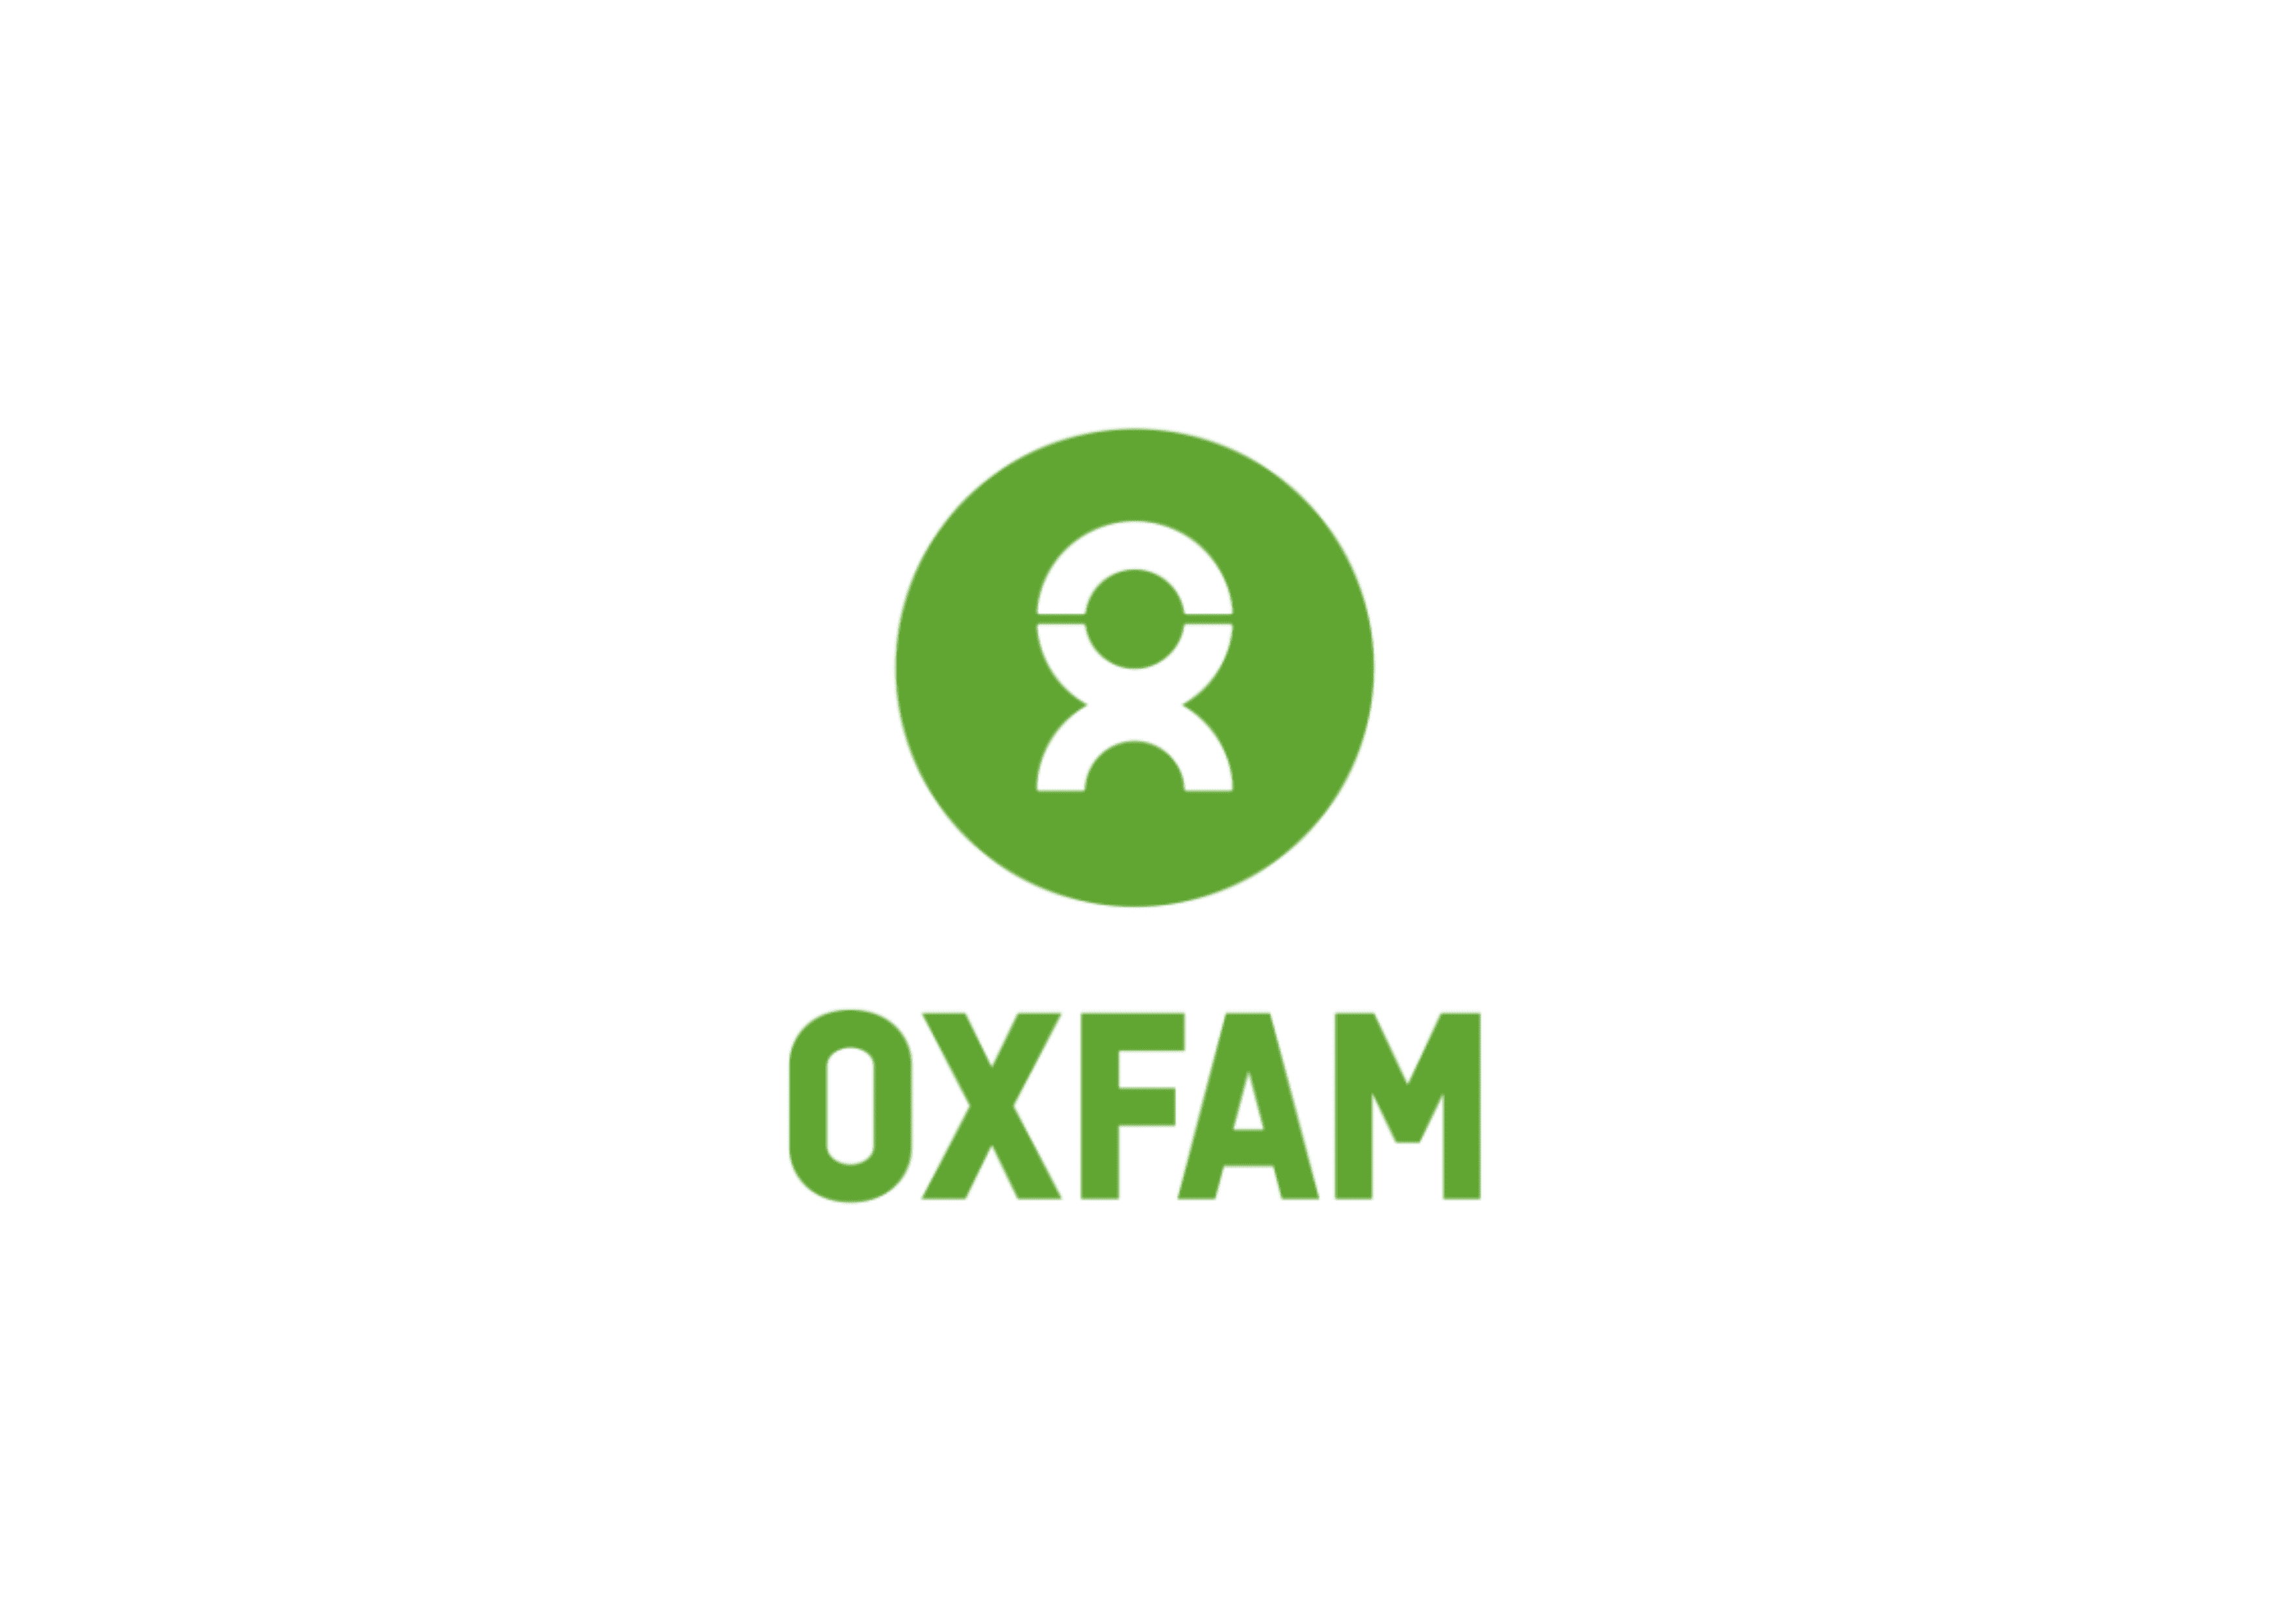 Image of Oxfam social media logo